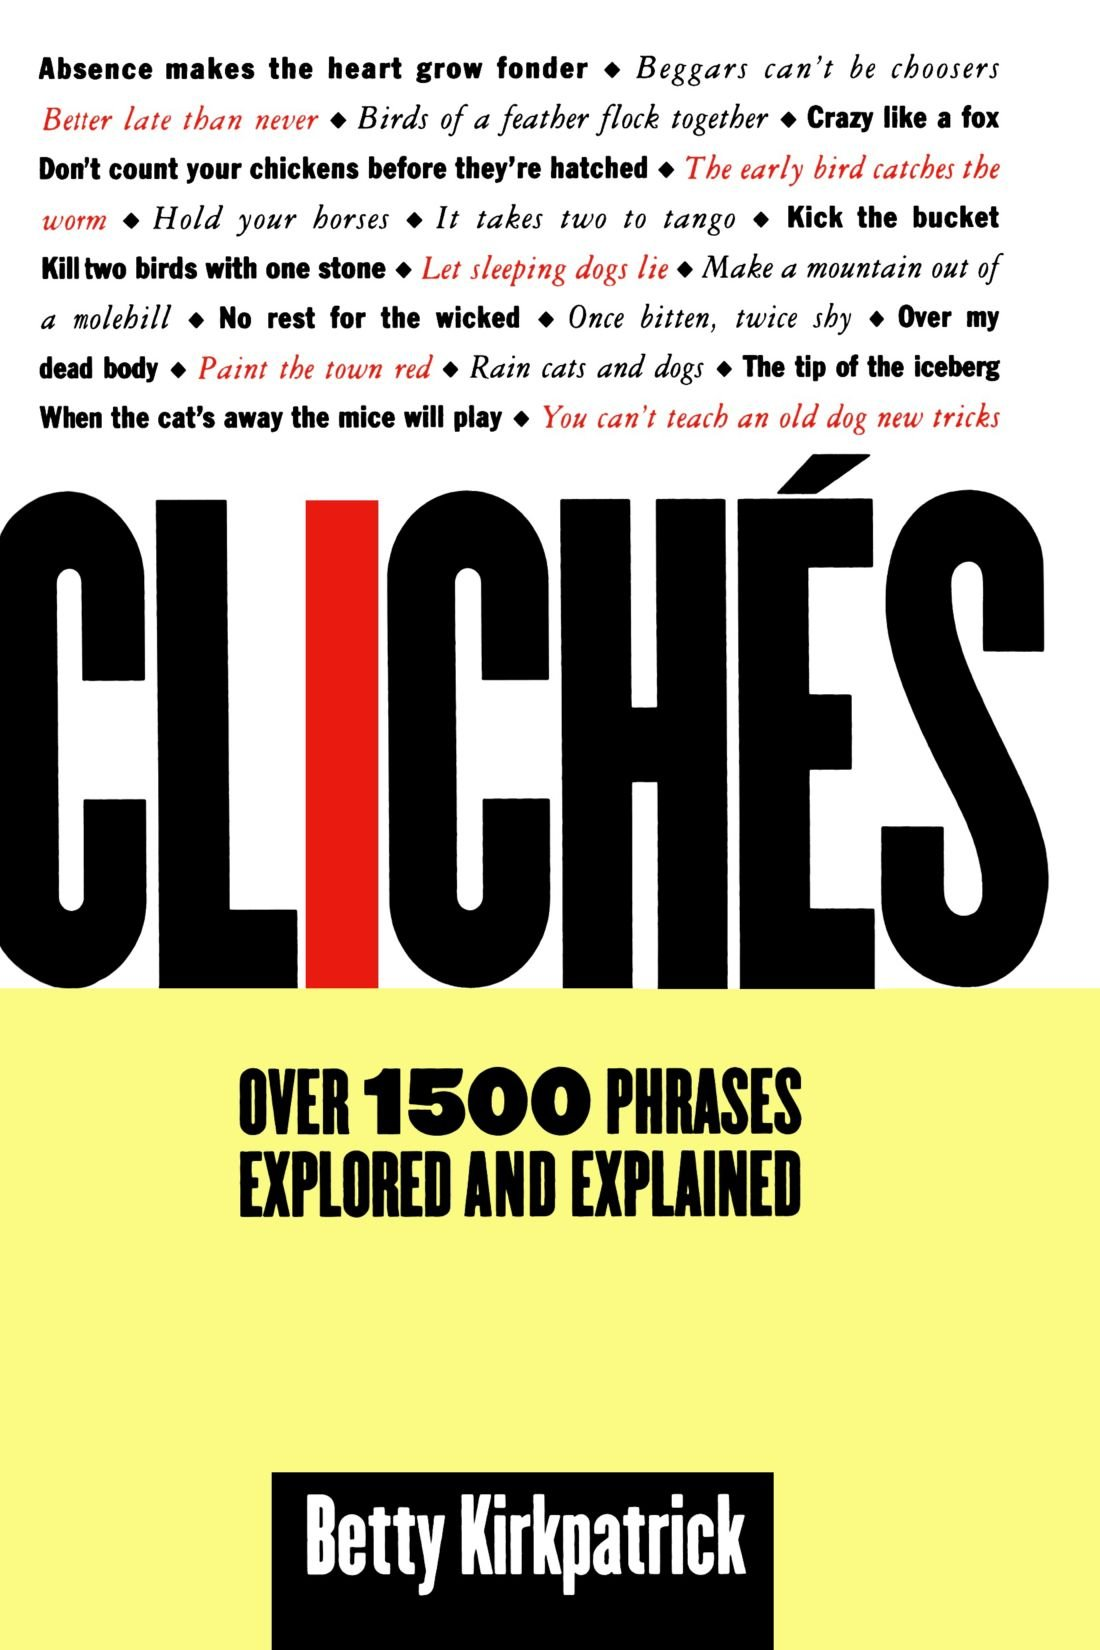 why are cliches used